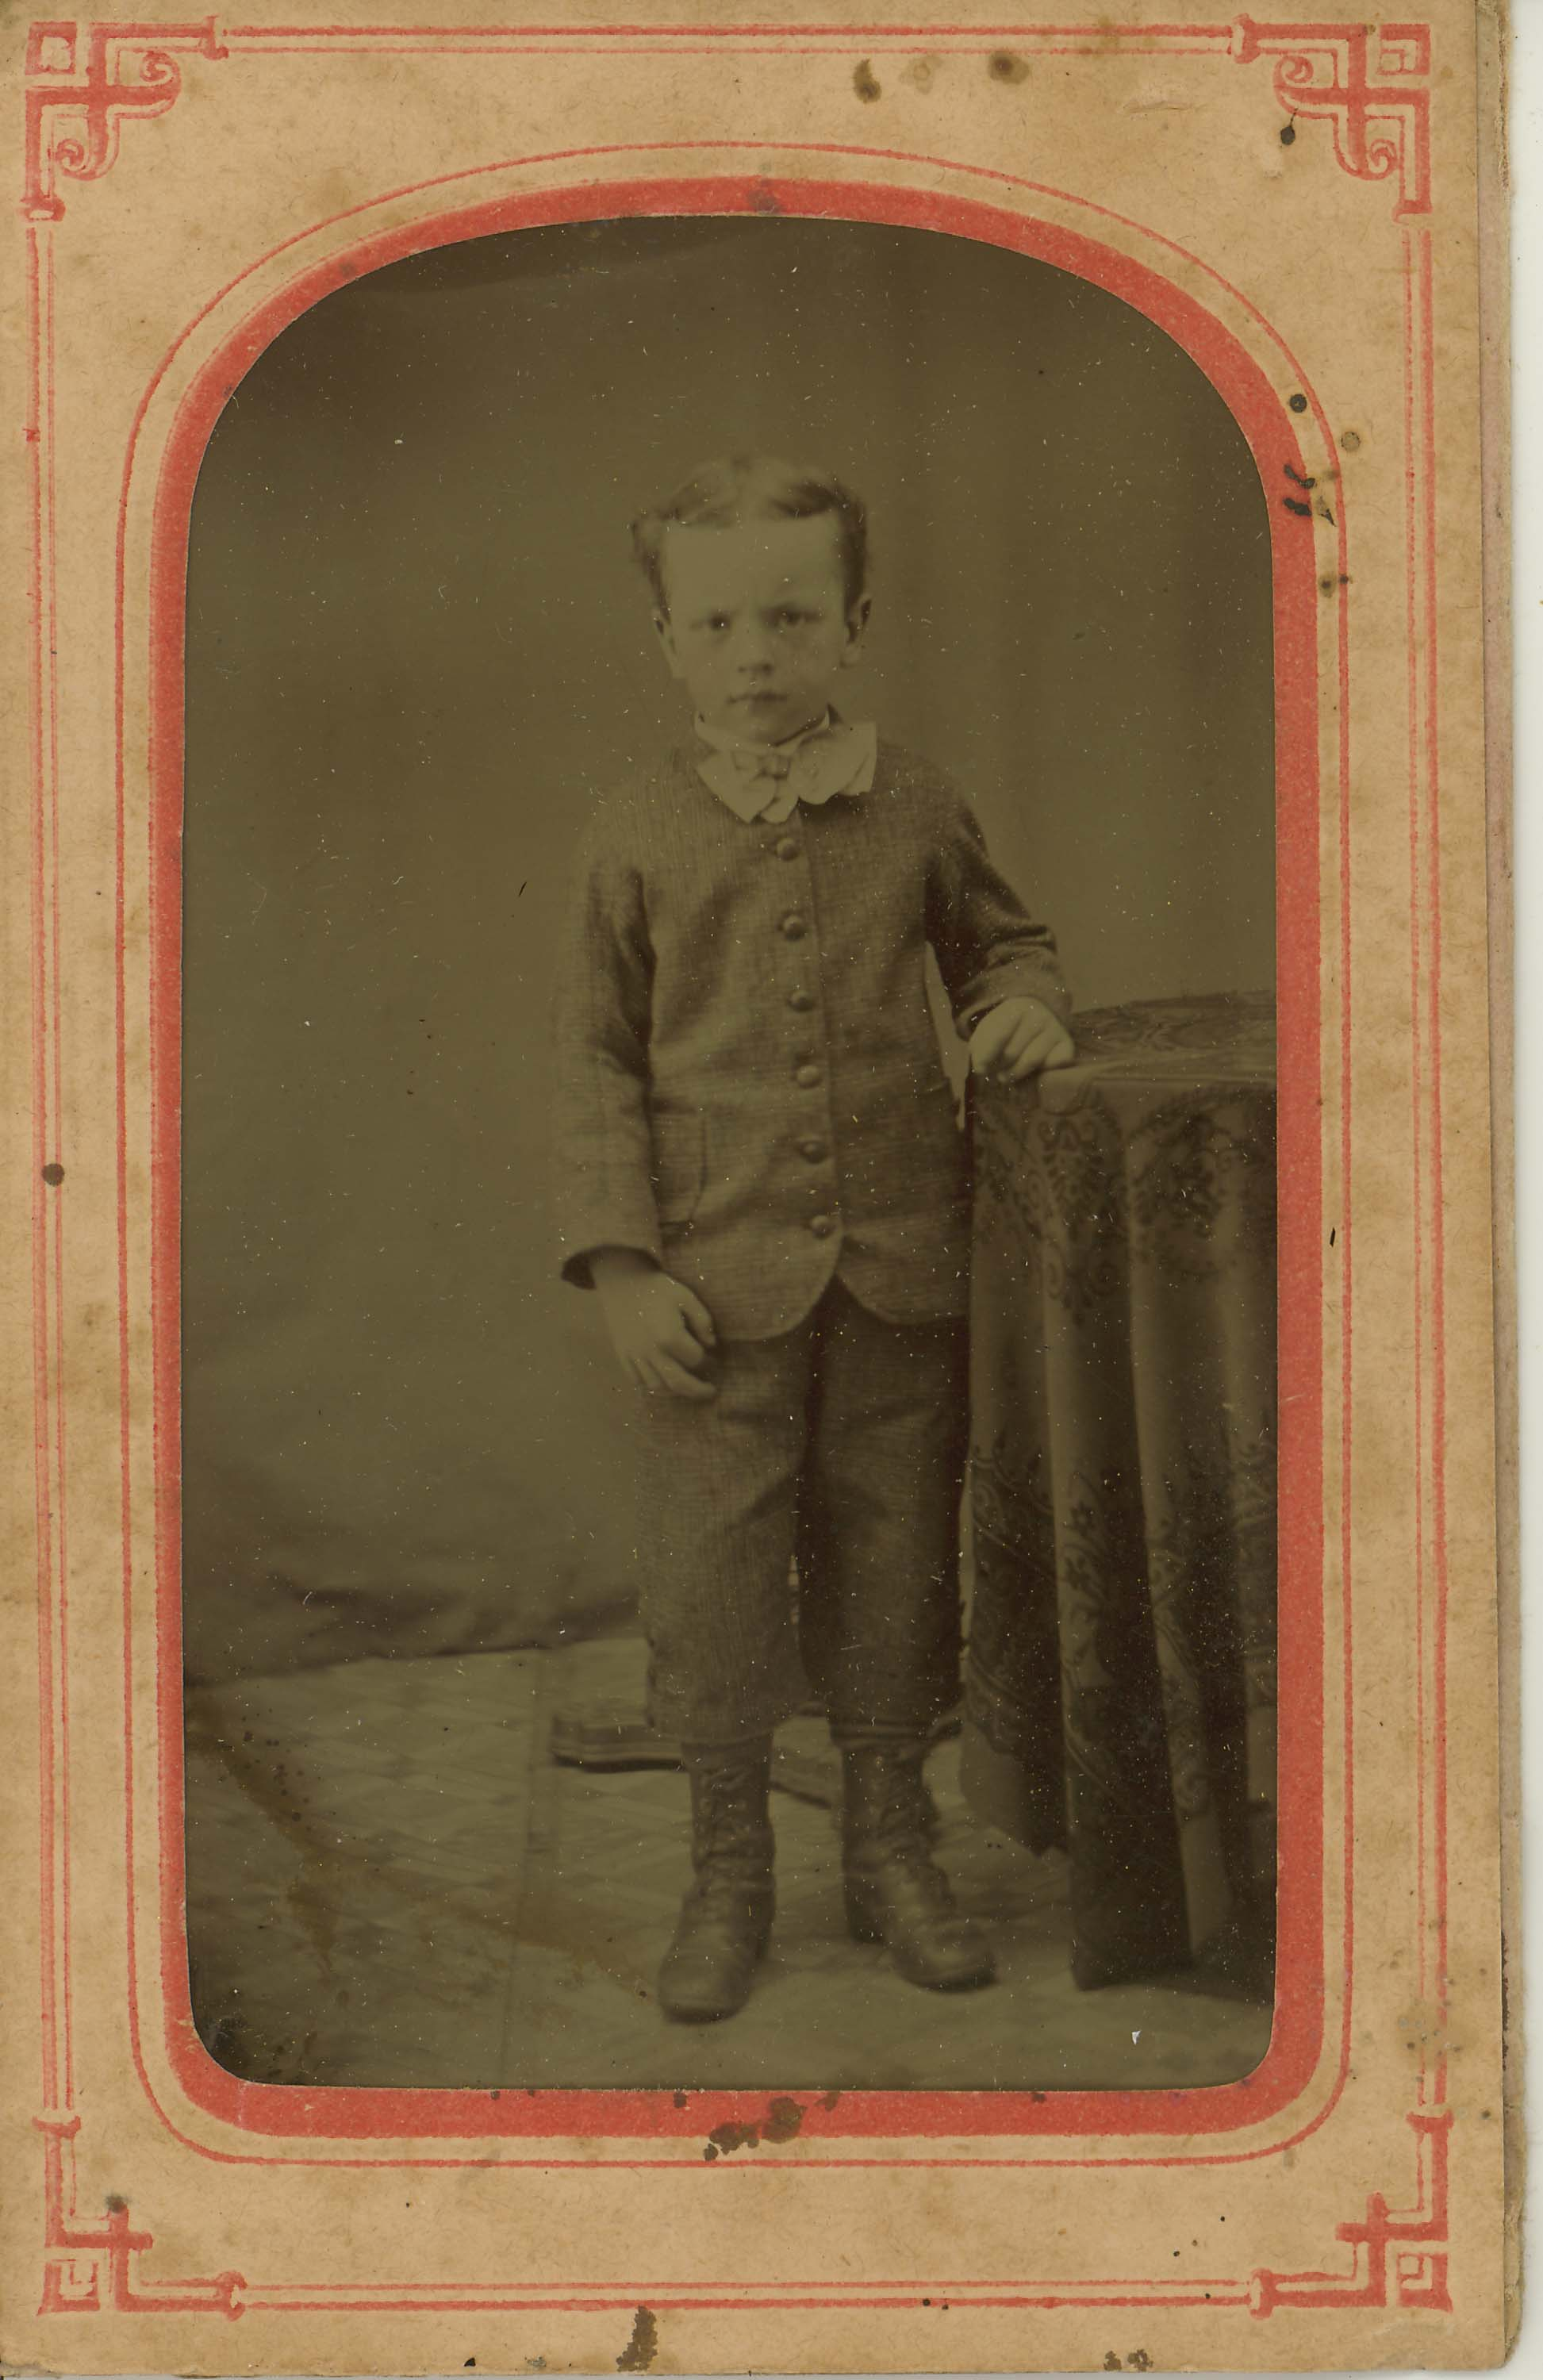 Tin-type-13-Small-boy-mounted-in-arched-pink-and-red-matt